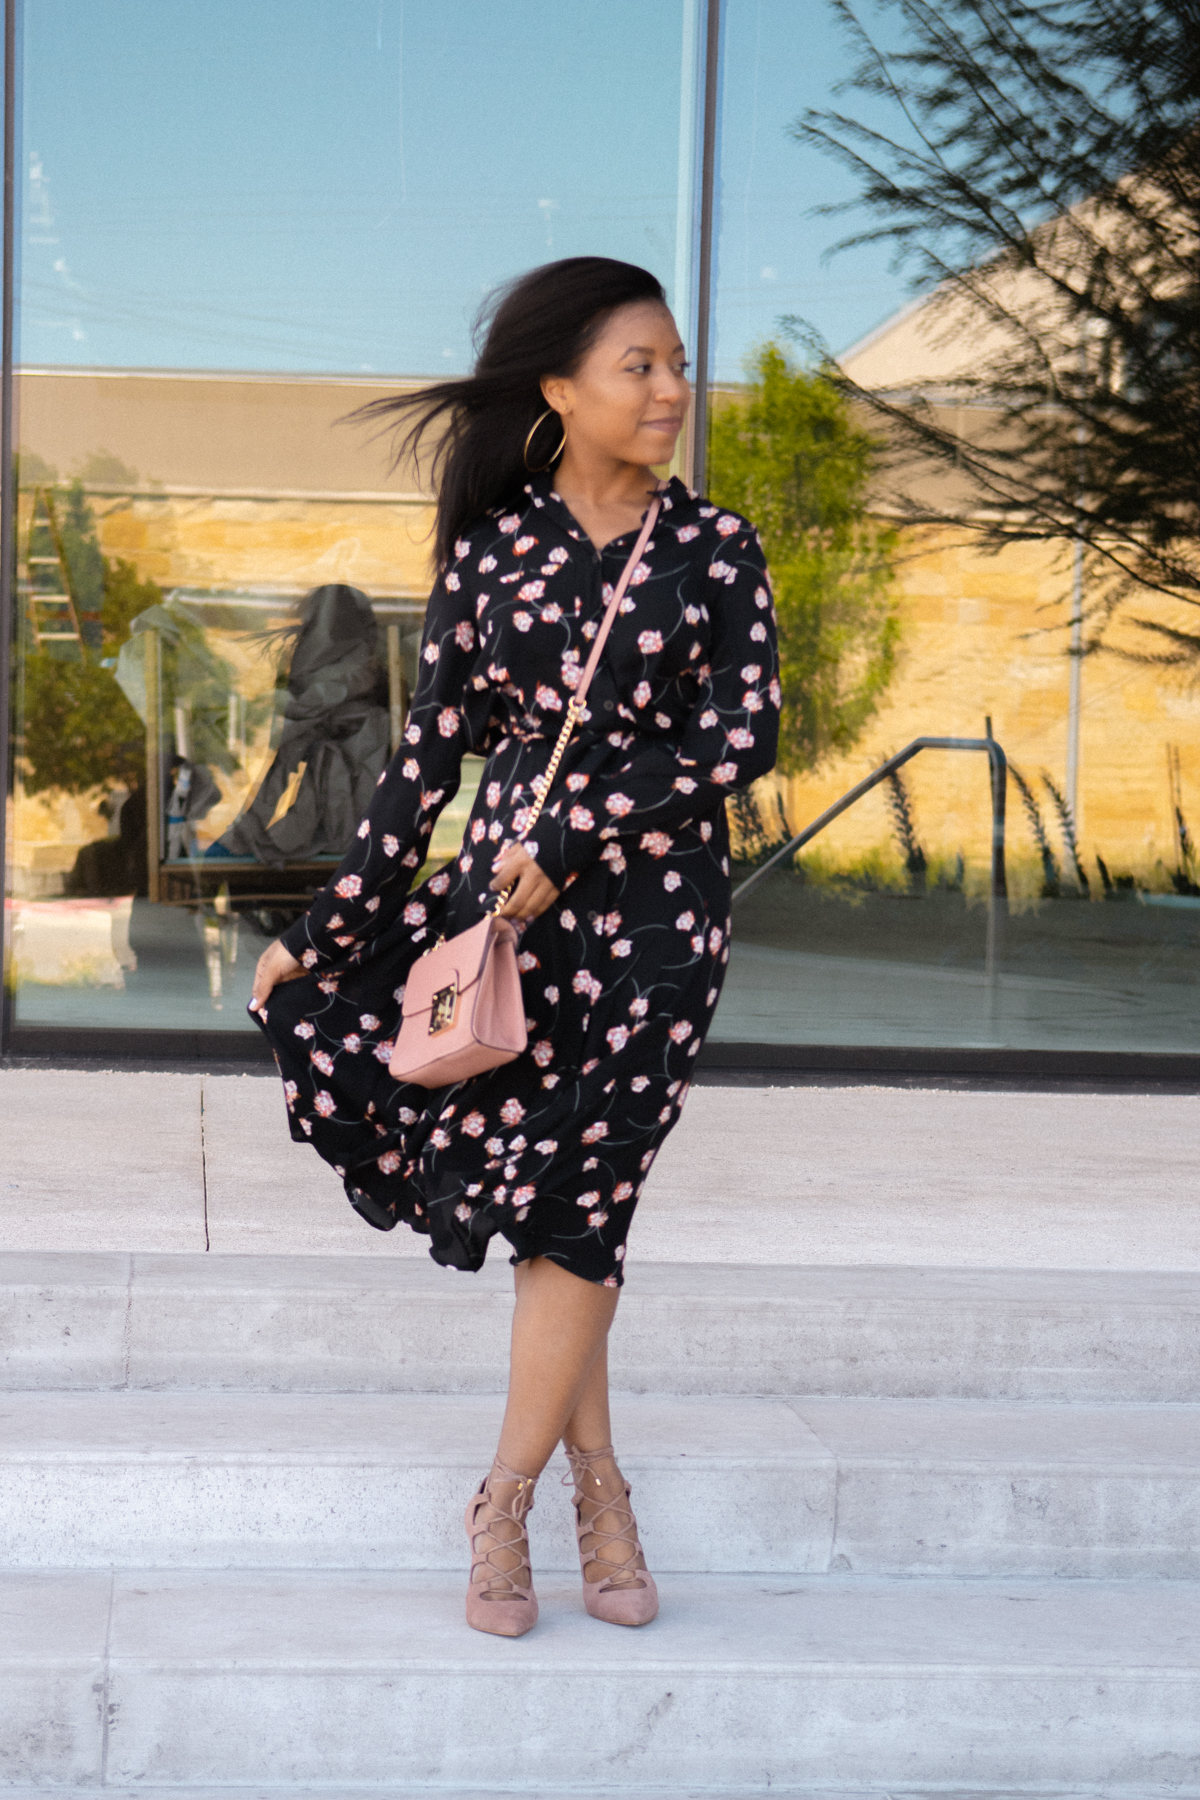 how to wear black in the summer in 5 easy tips